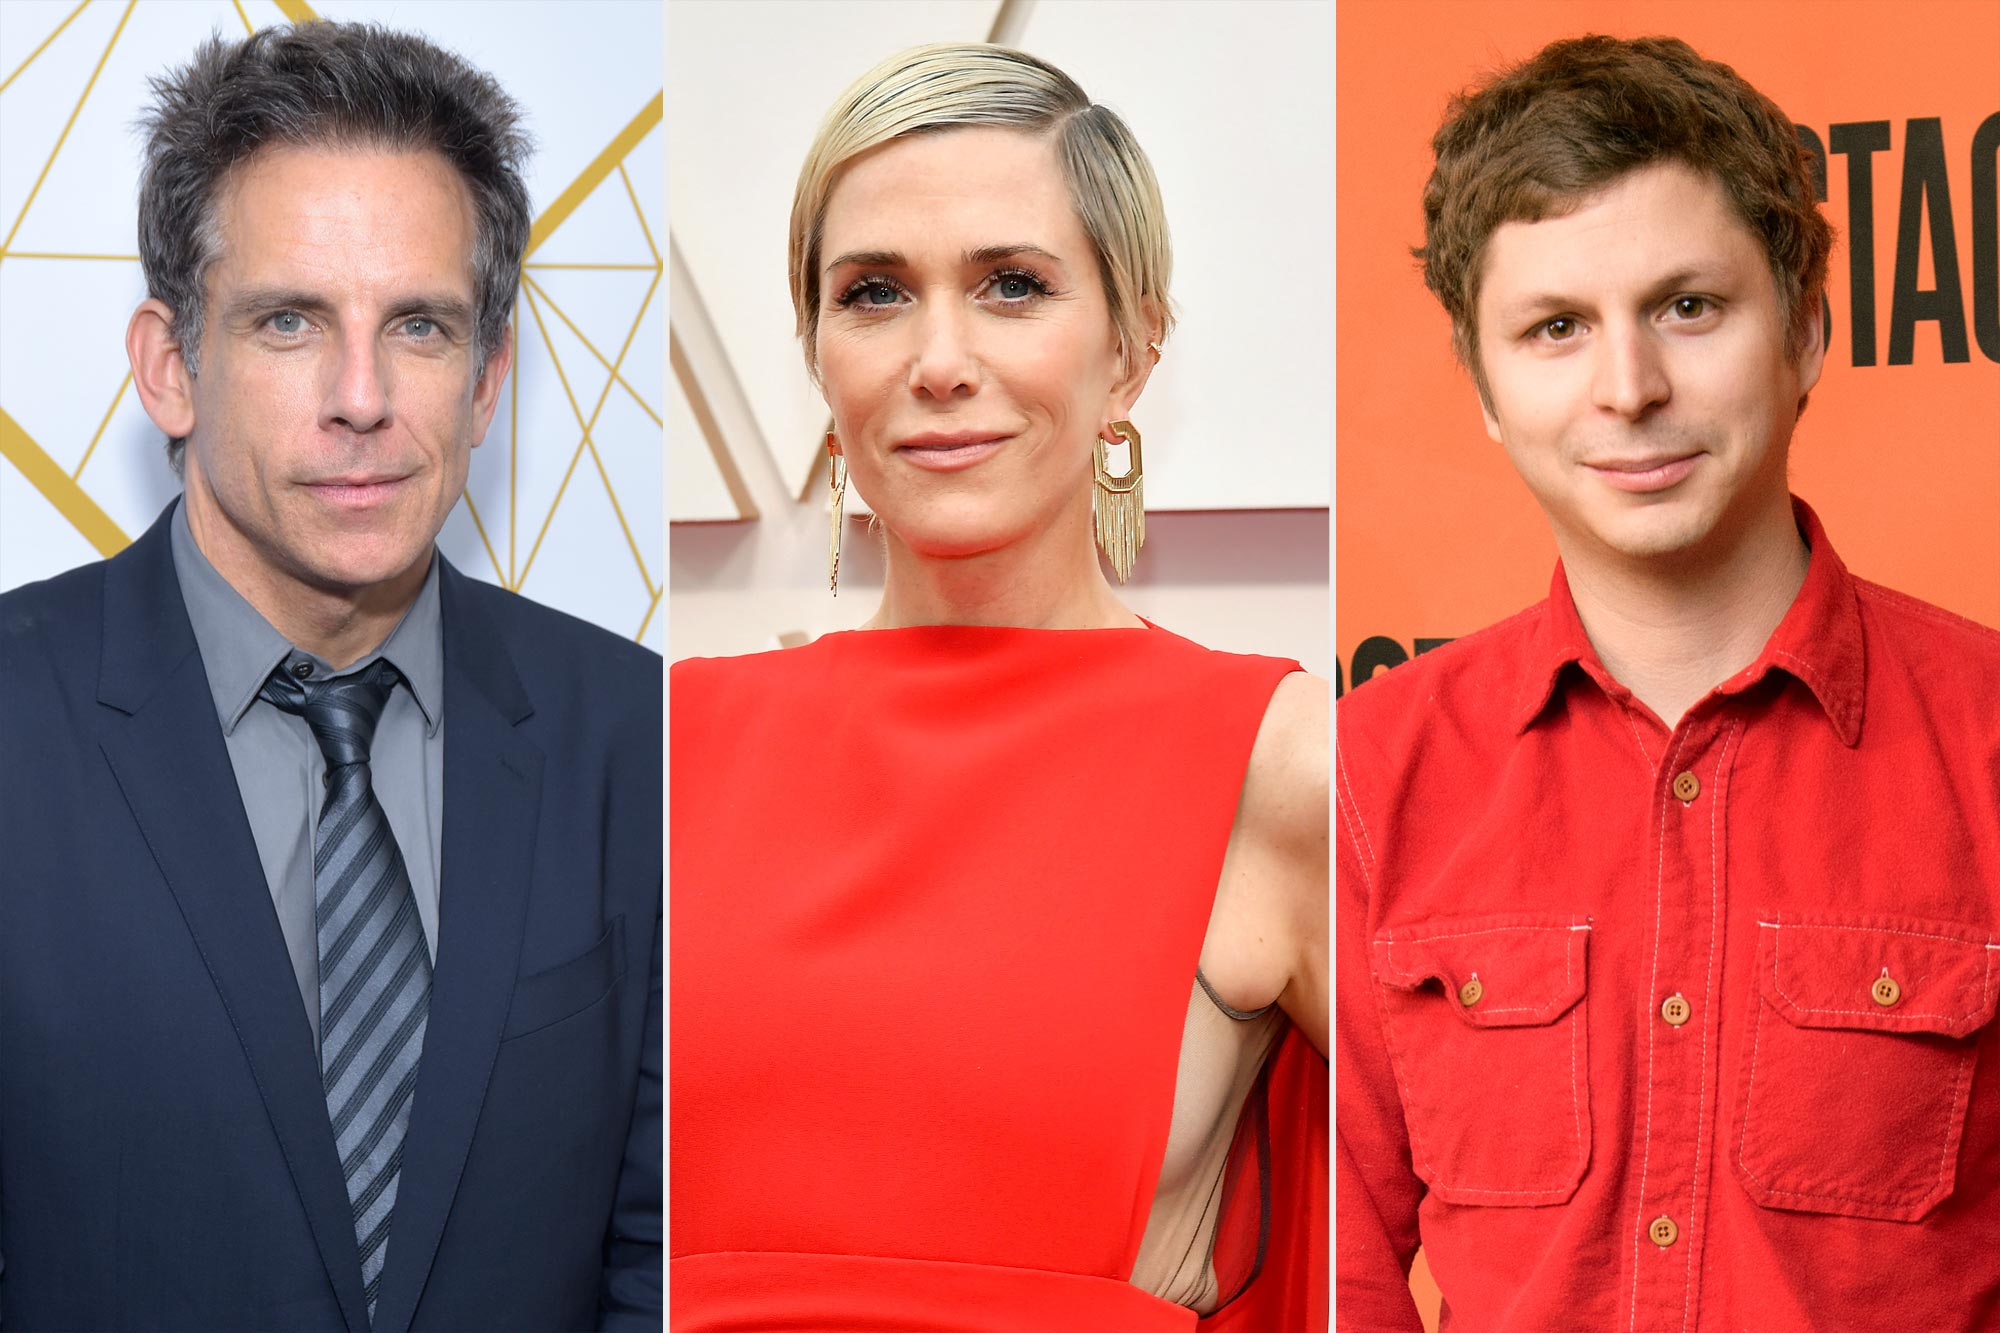 Ben Stiller, Kristen Wiig, and Michael Cera